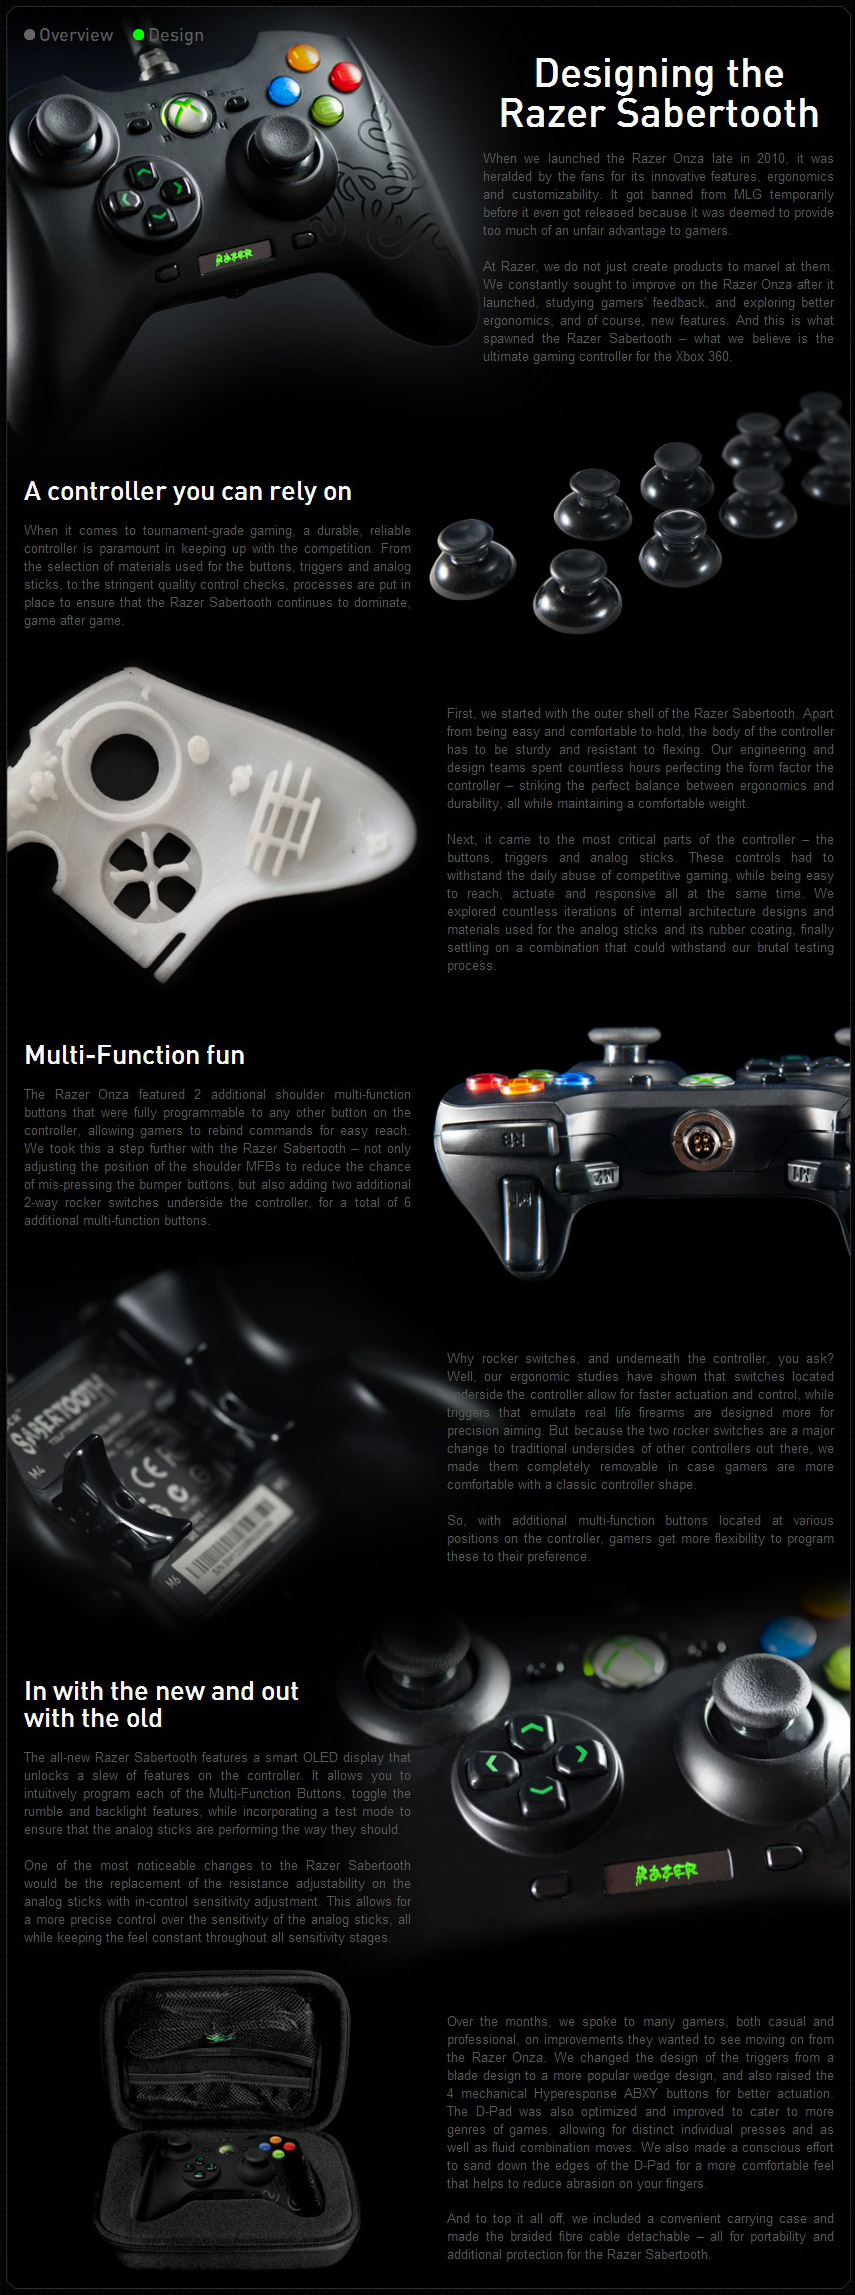 Razer Sabertooth – Gaming Controller for Xbox 360 and PC